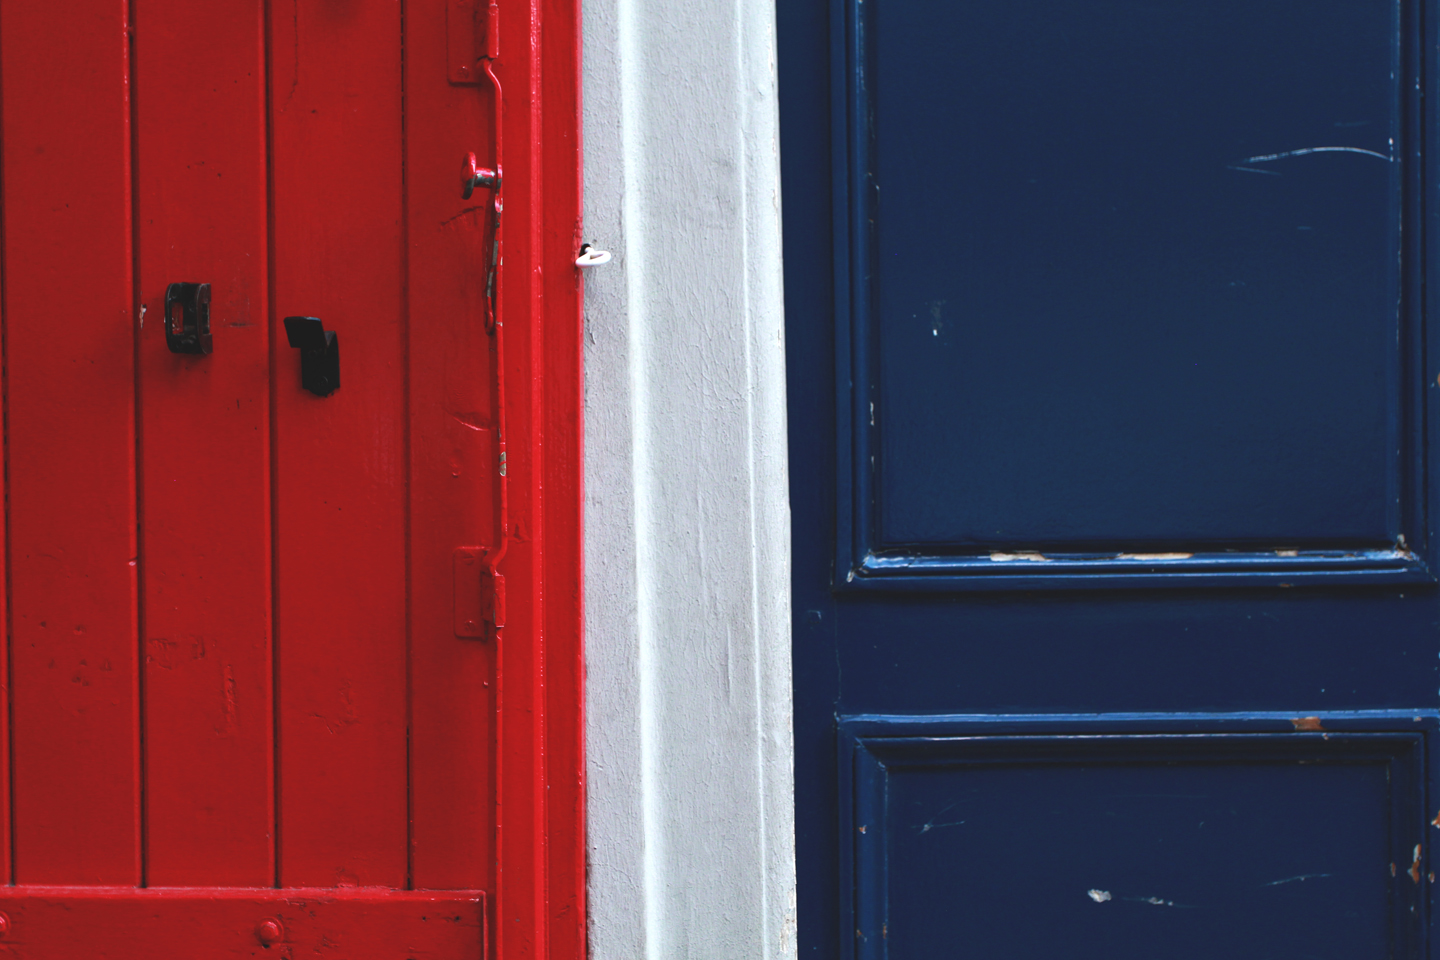 Doors and shutters, reminiscent of the French flag.